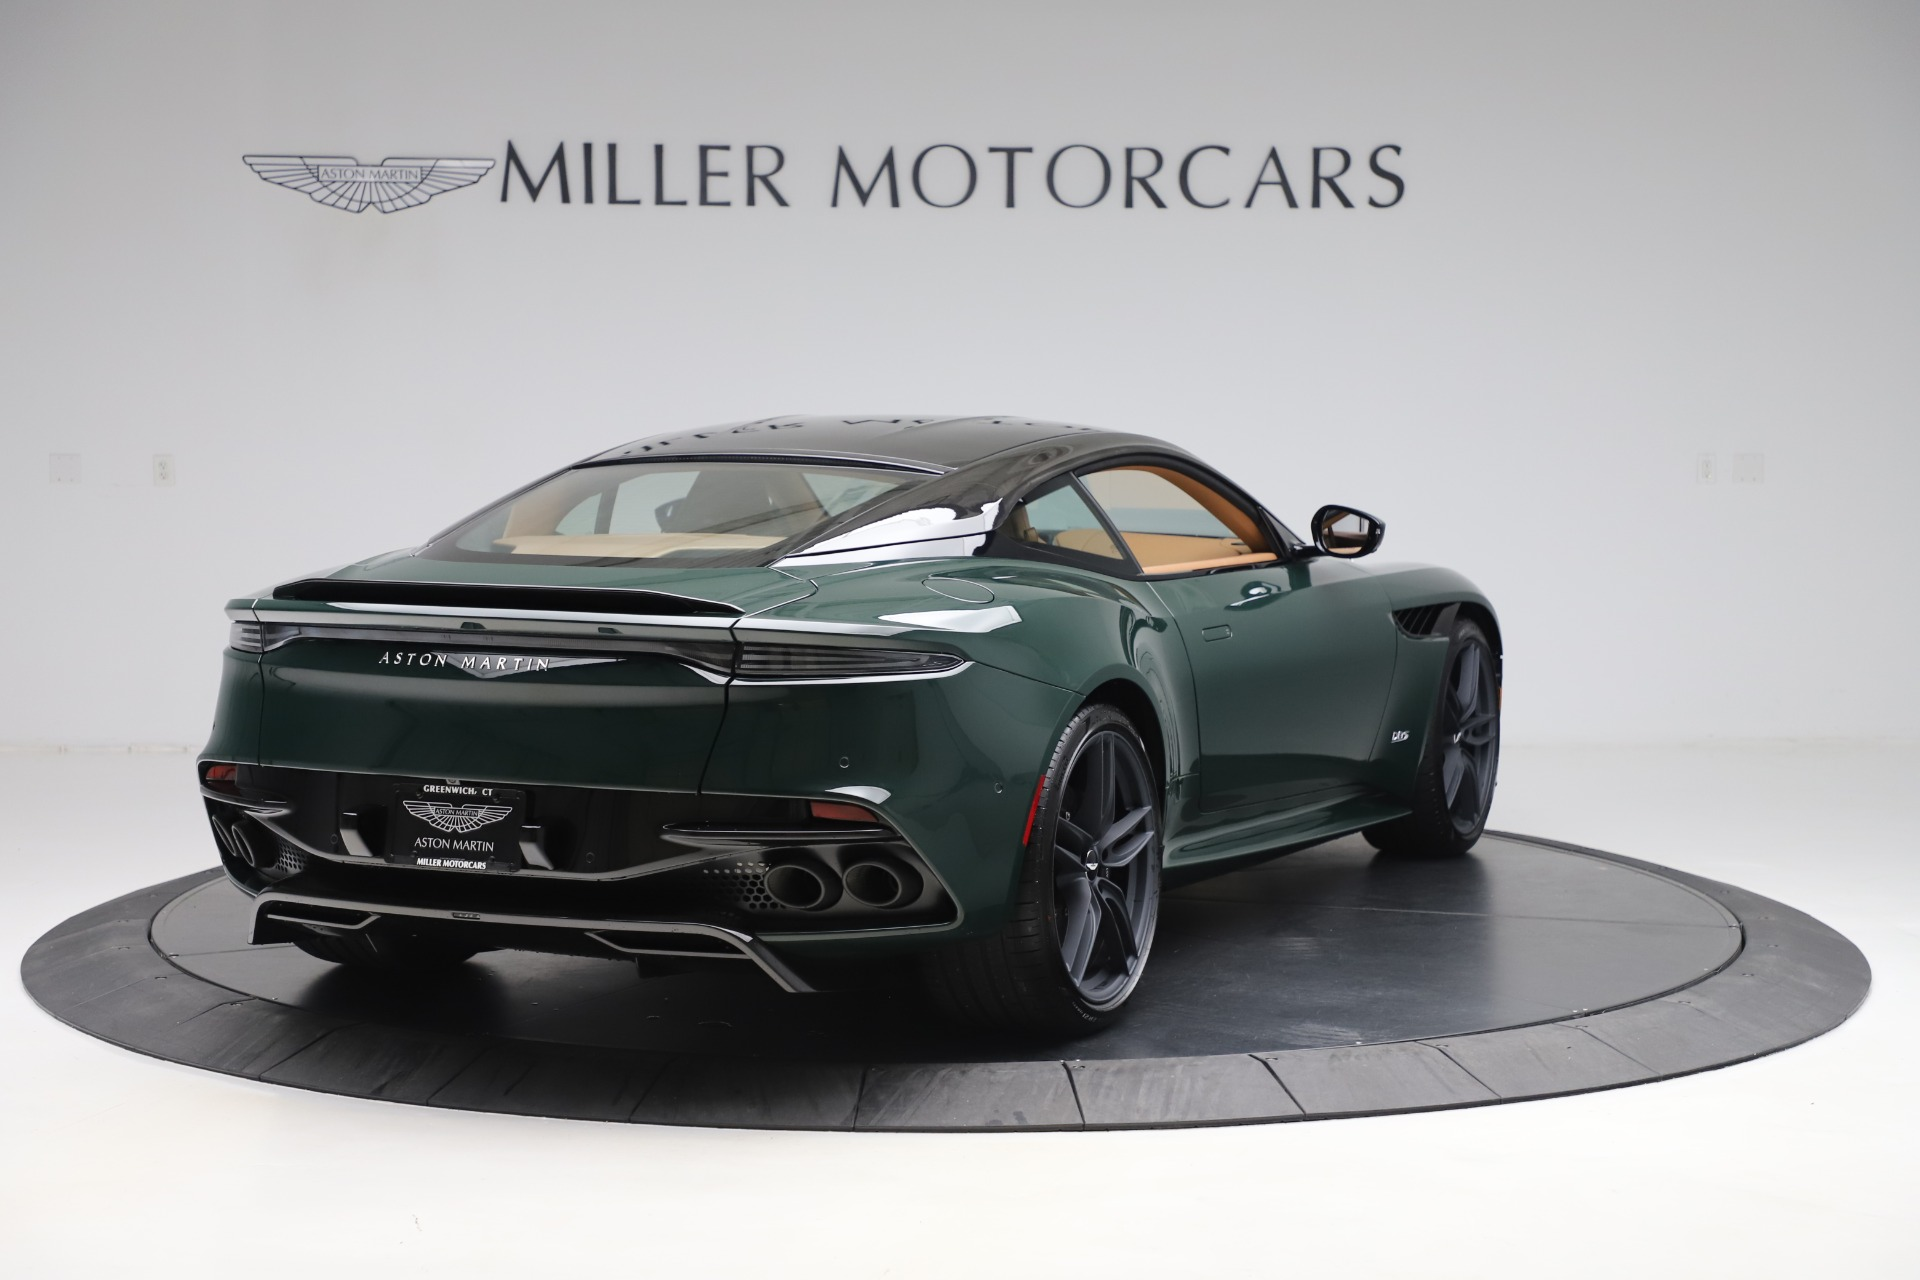 New 2020 Aston Martin DBS Superleggera For Sale In Westport, CT 3550_p7